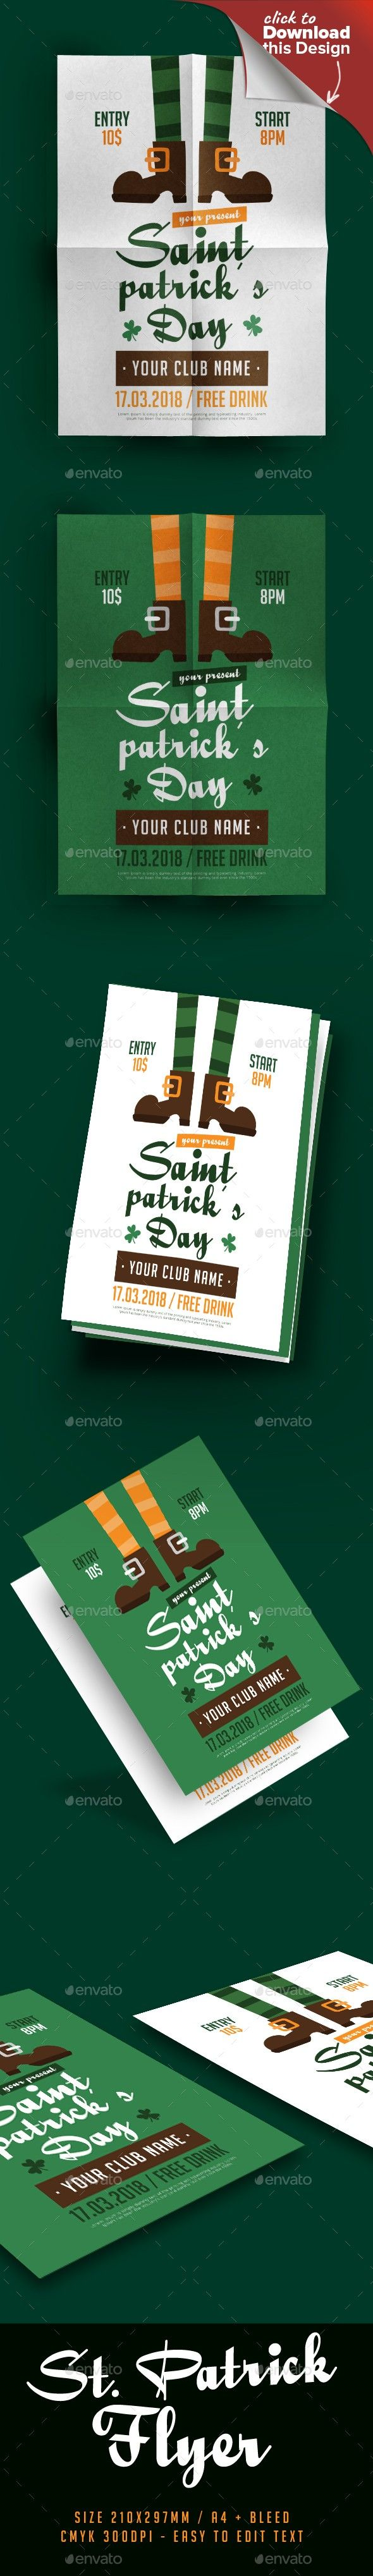 Saint Patricku0027s Day Flyer 59 best Flyers